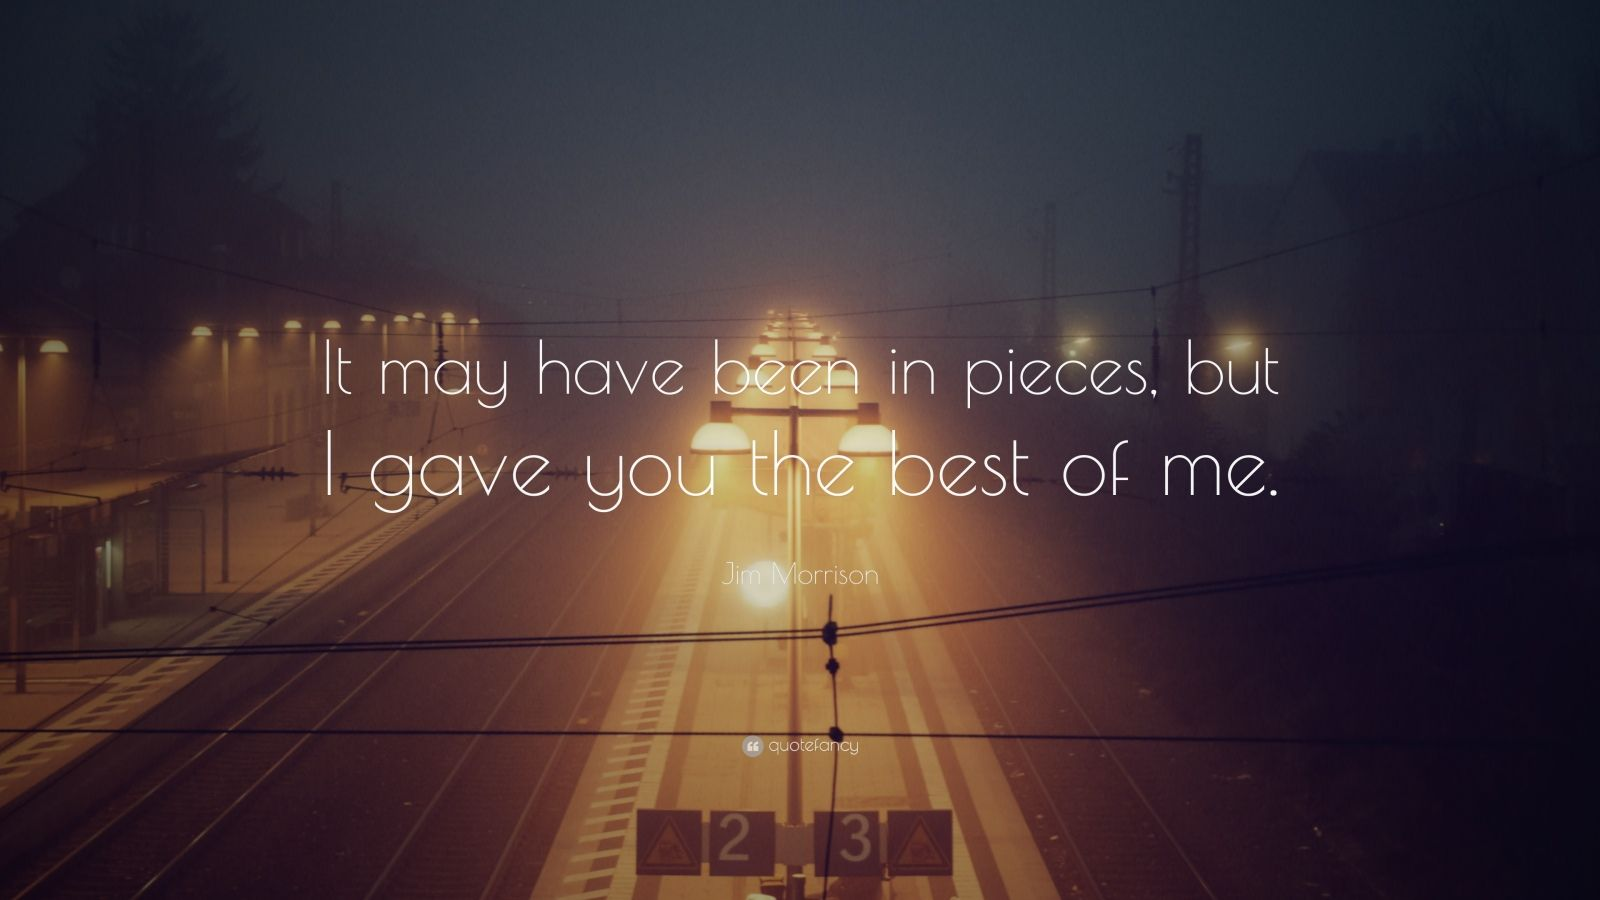 """Jim Morrison Quote: """"It may have been in pieces, but I gave you the best of me."""""""